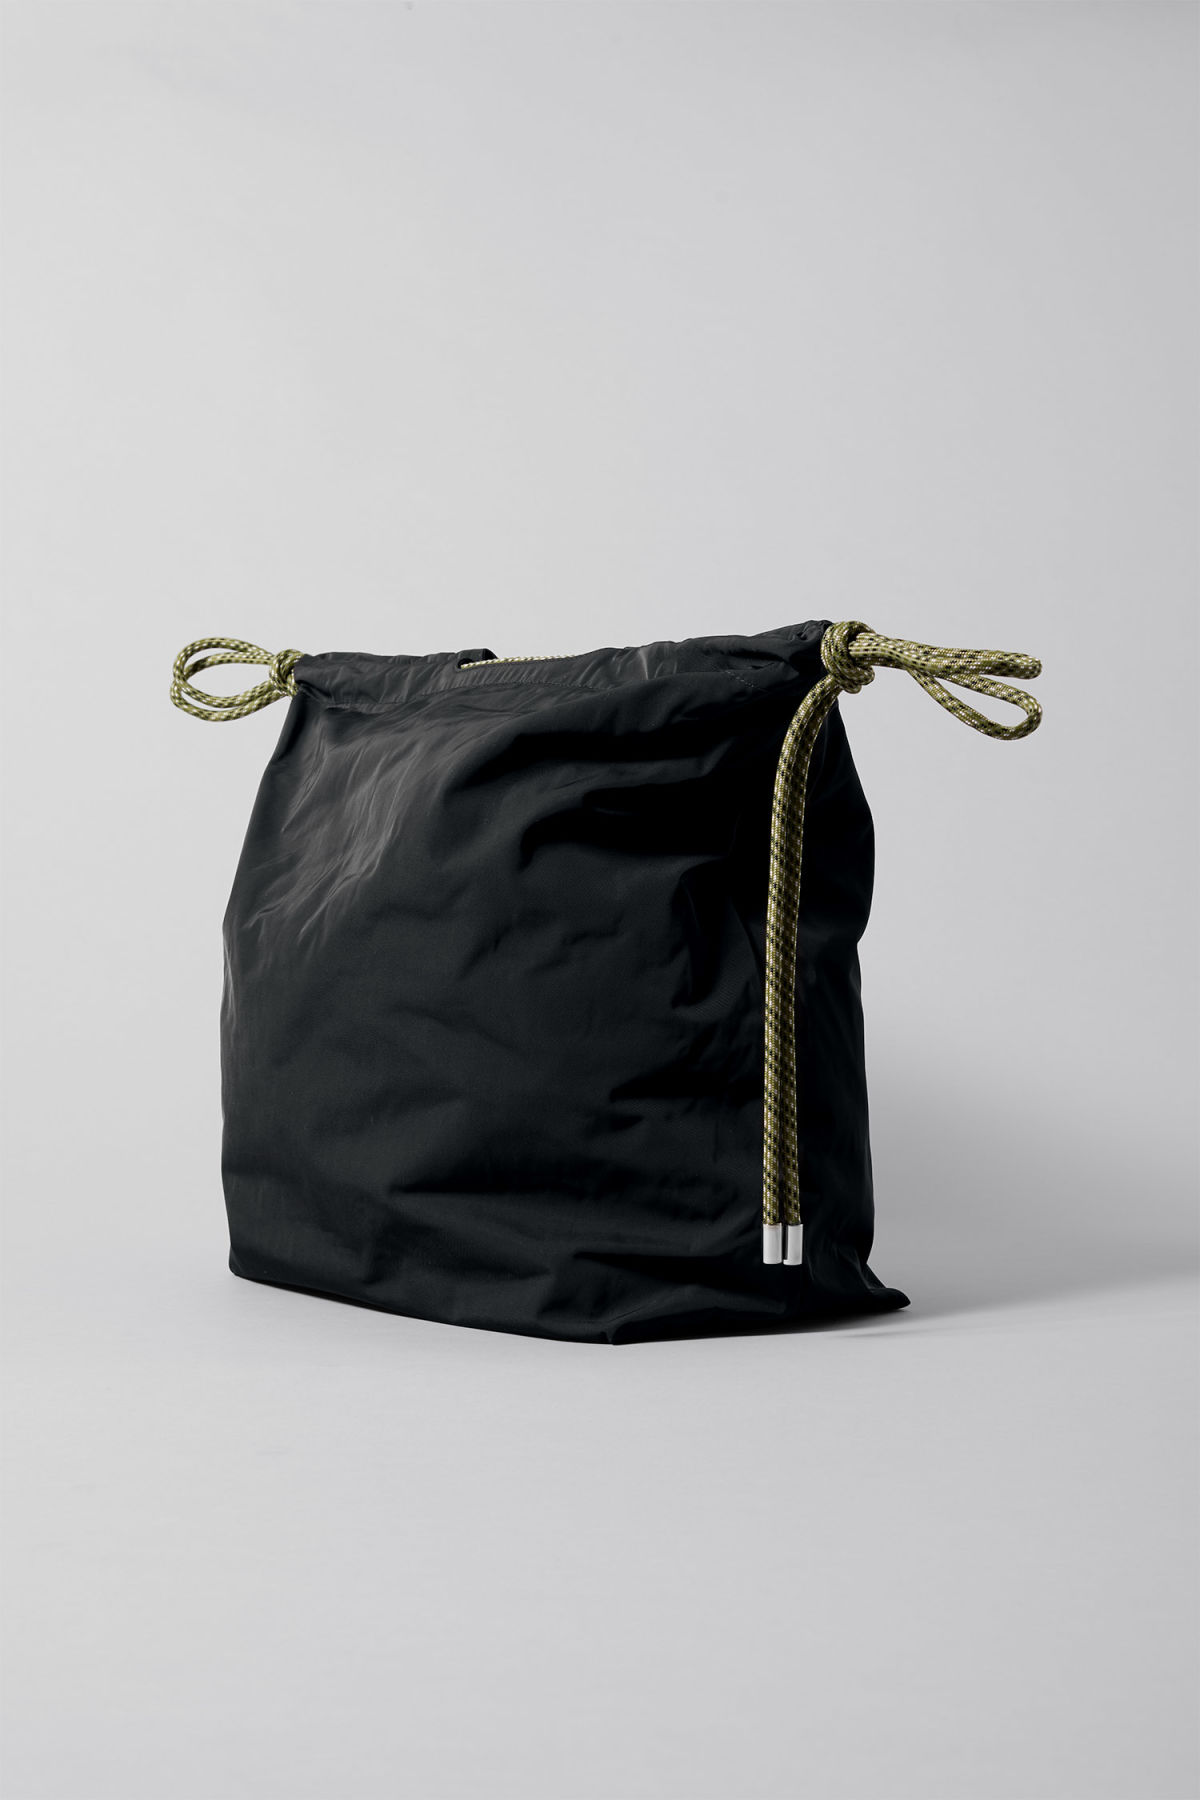 Weekday Cord Tote Bag - Black Buy Cheap Price Outlet Geniue Stockist Nicekicks Sale Online Shop Your Own Ebay Cheap Price Nb1HN